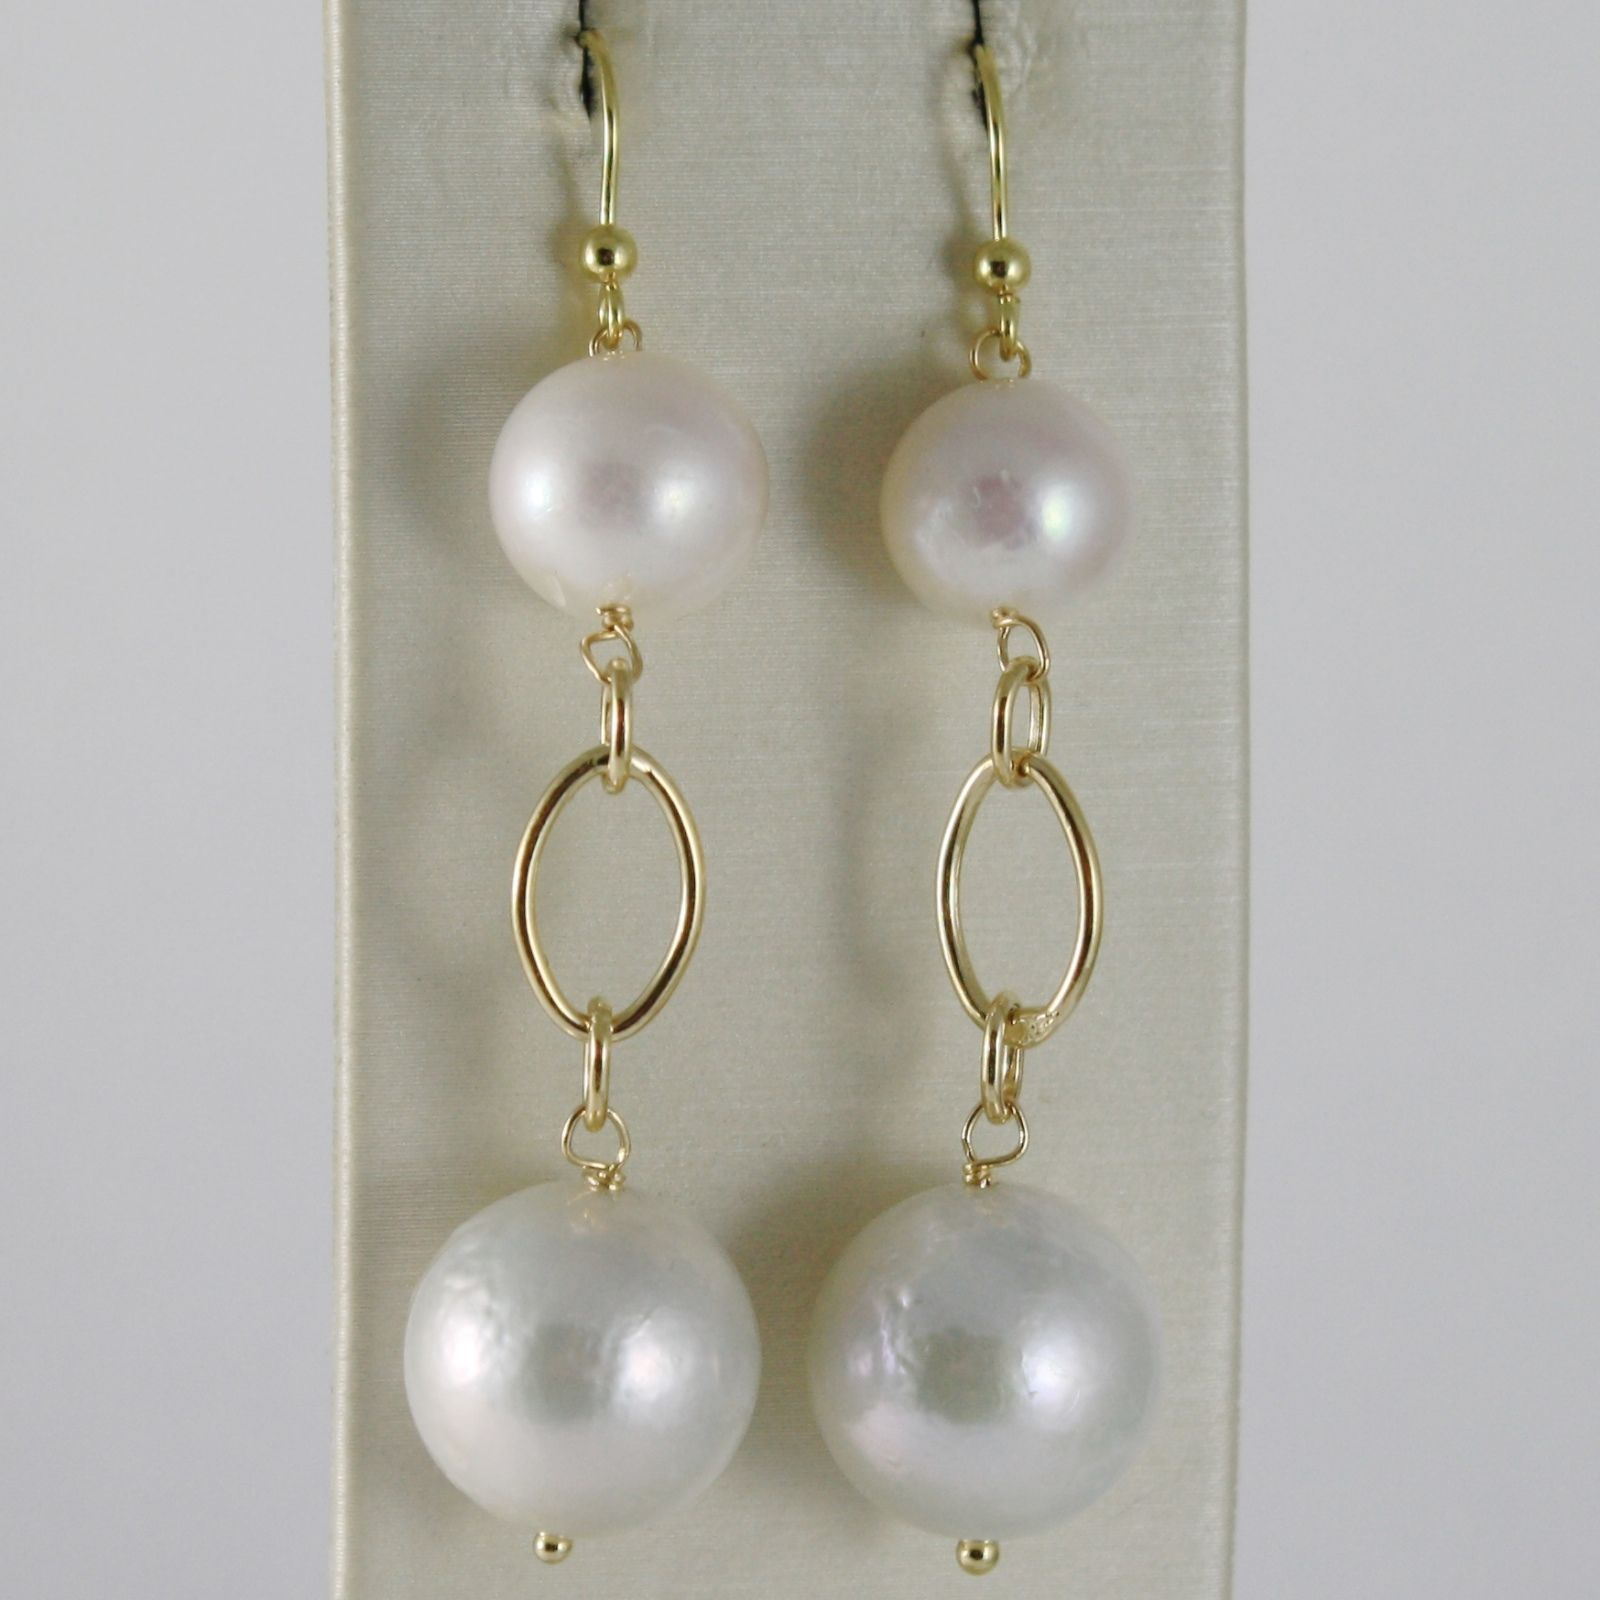 SOLID 18K YELLOW GOLD PENDANT EARRINGS WITH BIG 12 MM WHITE FRESHWATER PEARLS